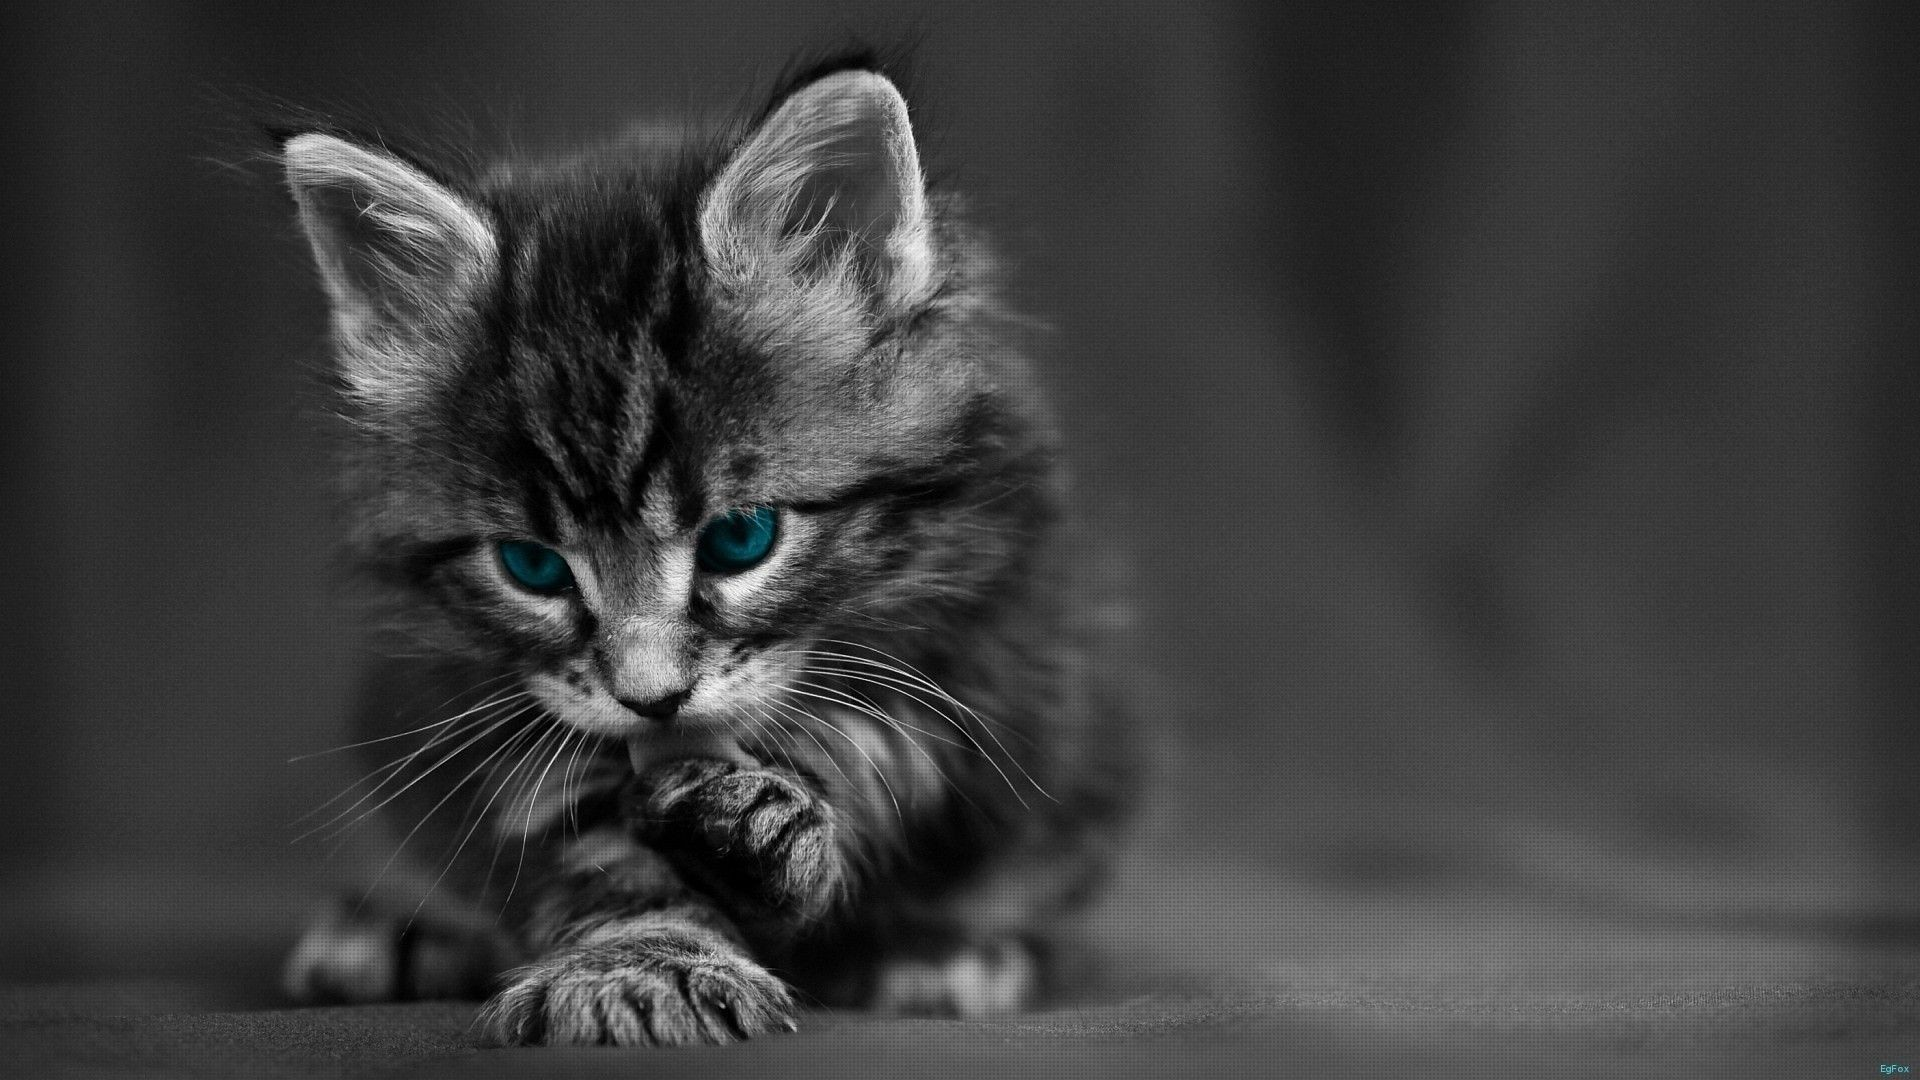 1920x1080 Wallpaper HD 1080p Black And White Cat